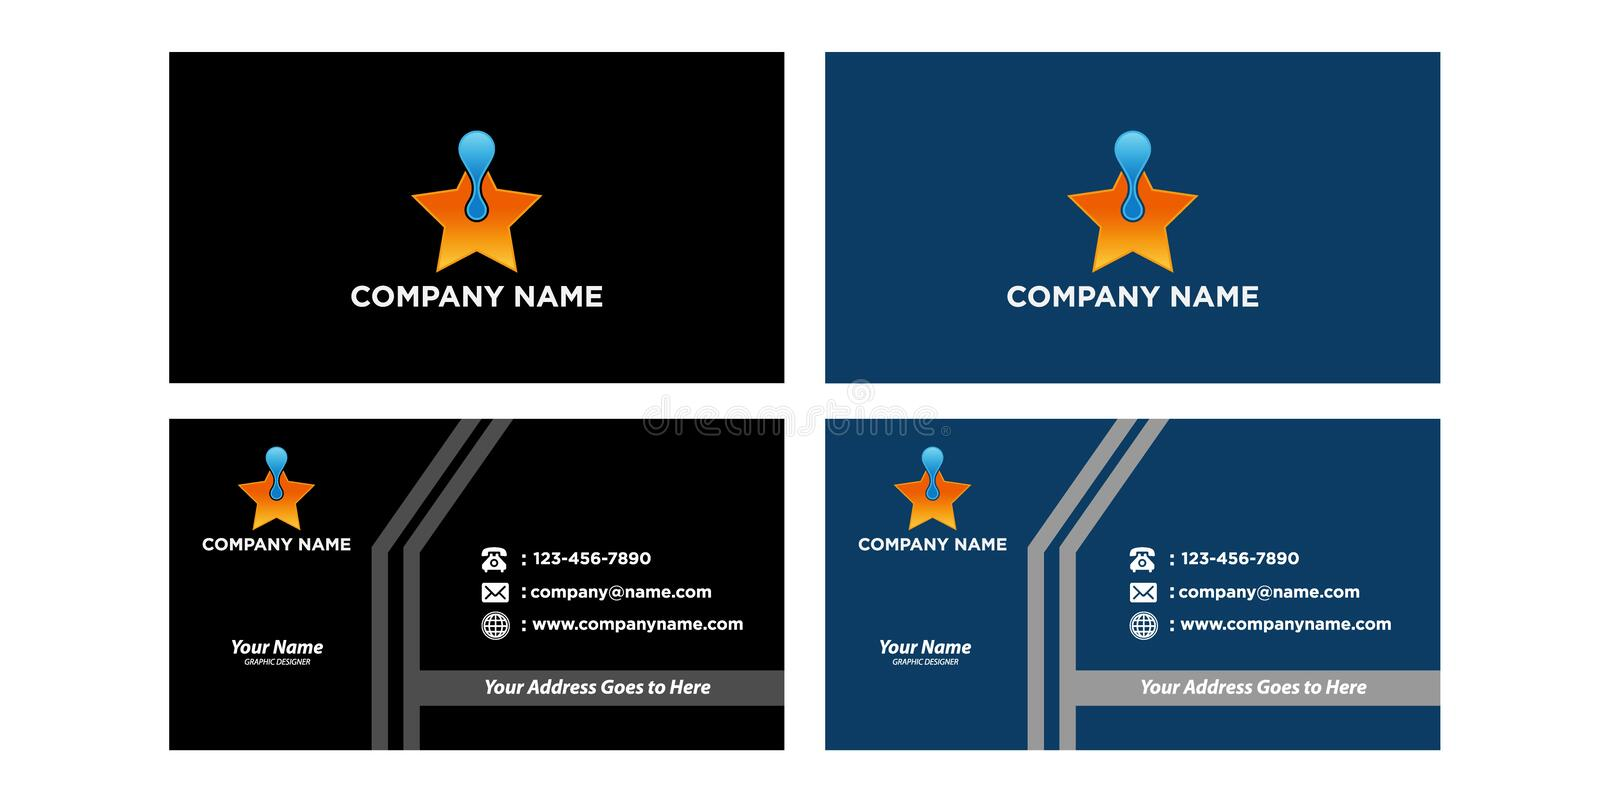 Set of business cards. You can edit the cards by adding your name and company name